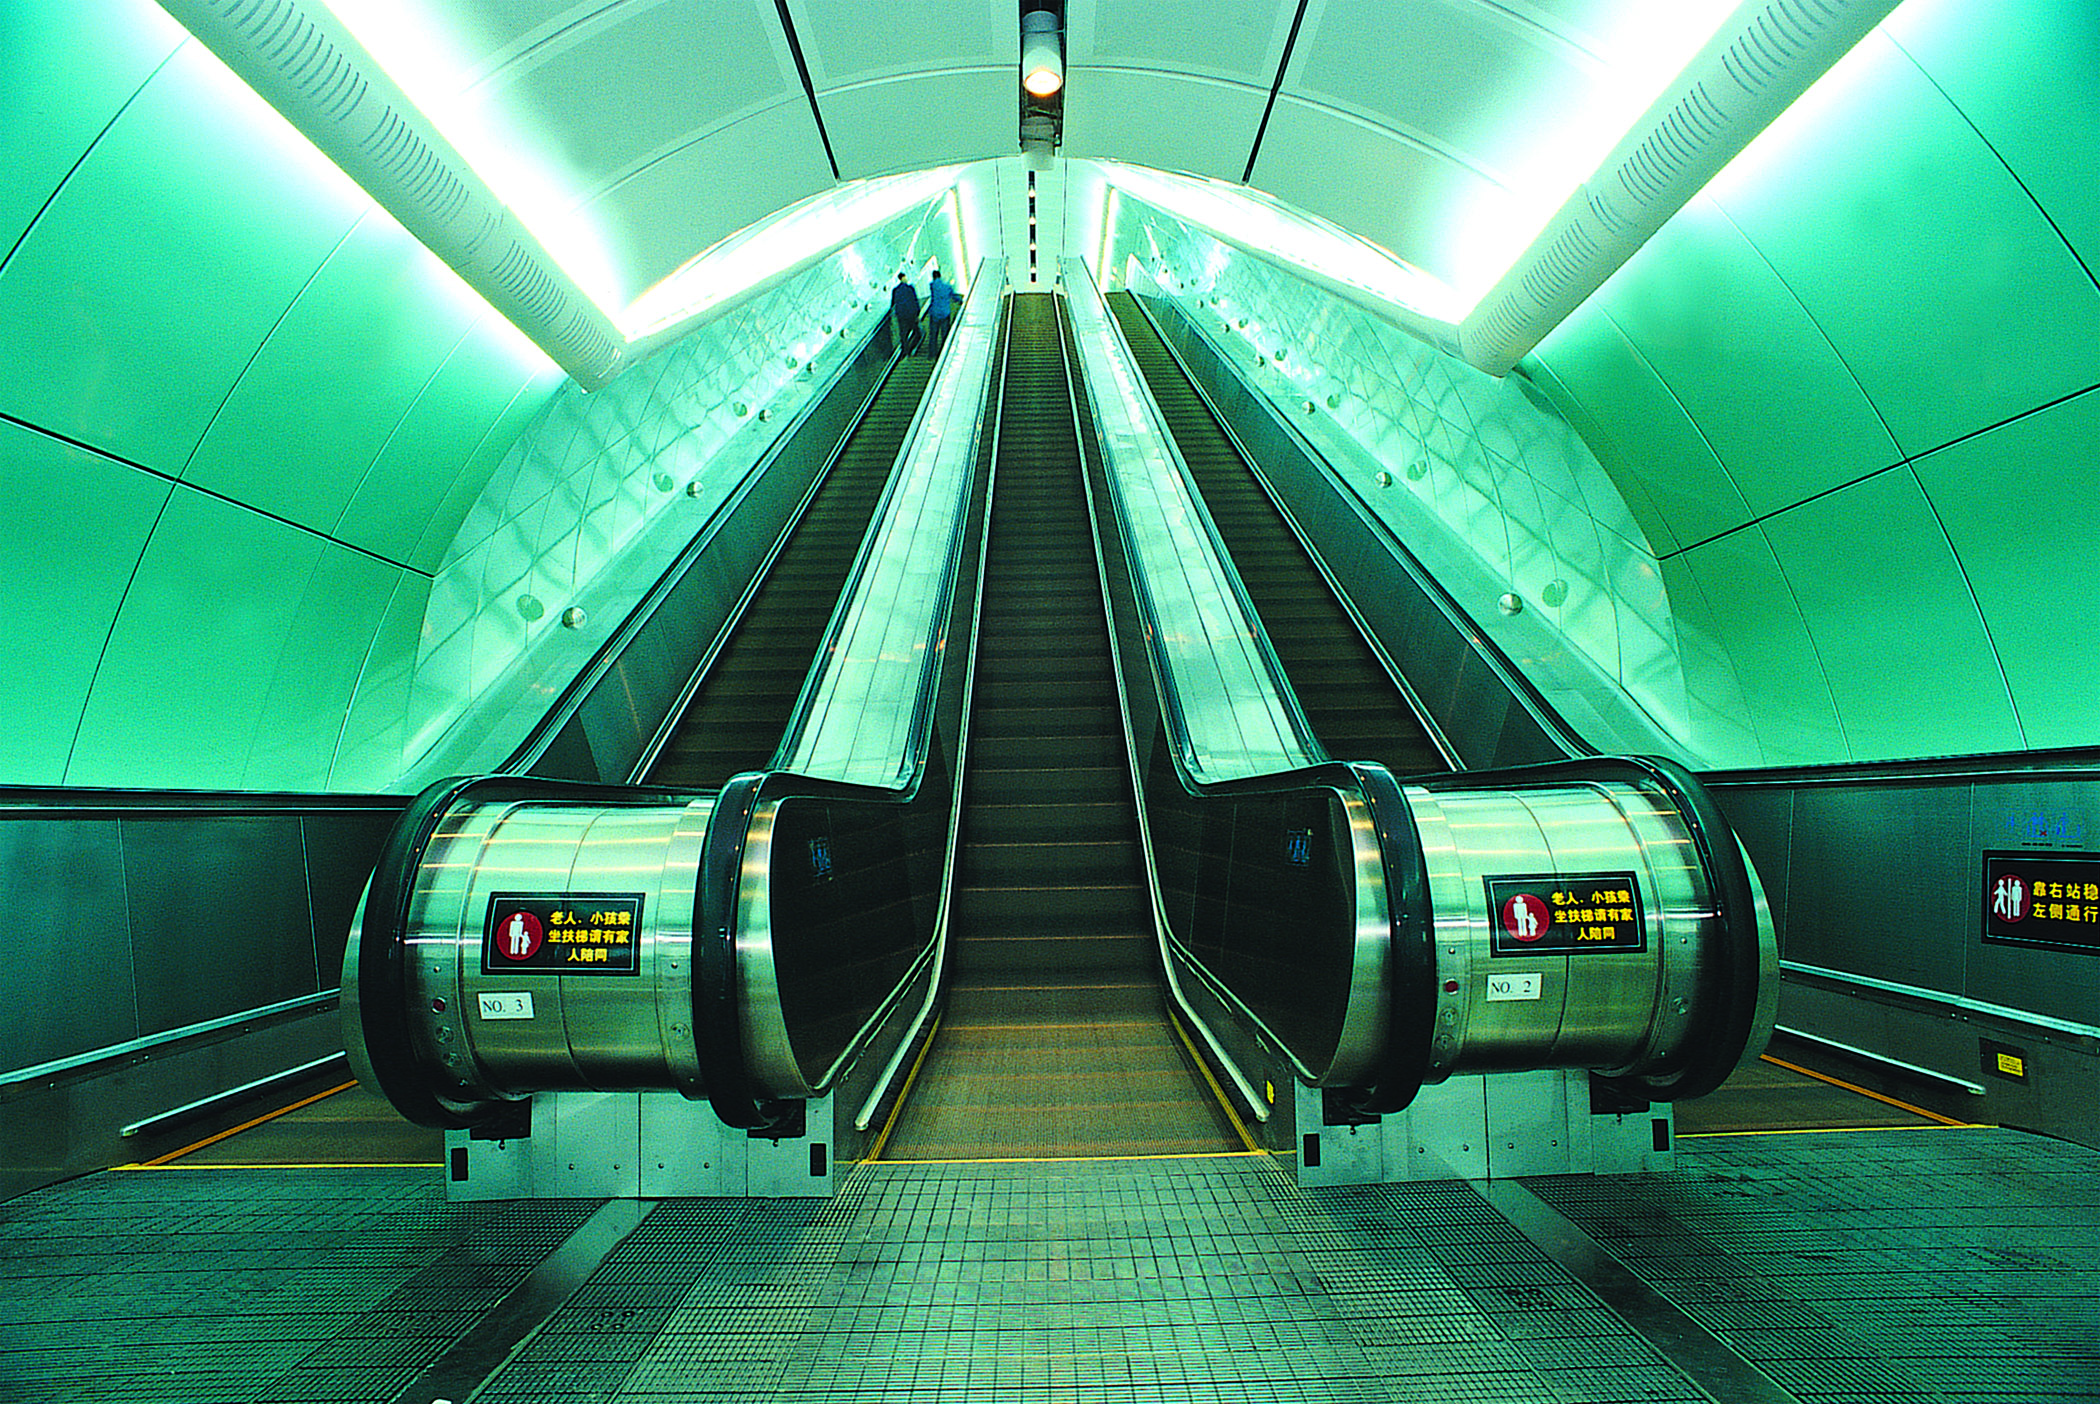 Hitachi Elevator wins bid to supply escalators and escalators to Guangzhou Metro Line 7's western extension to Shunde